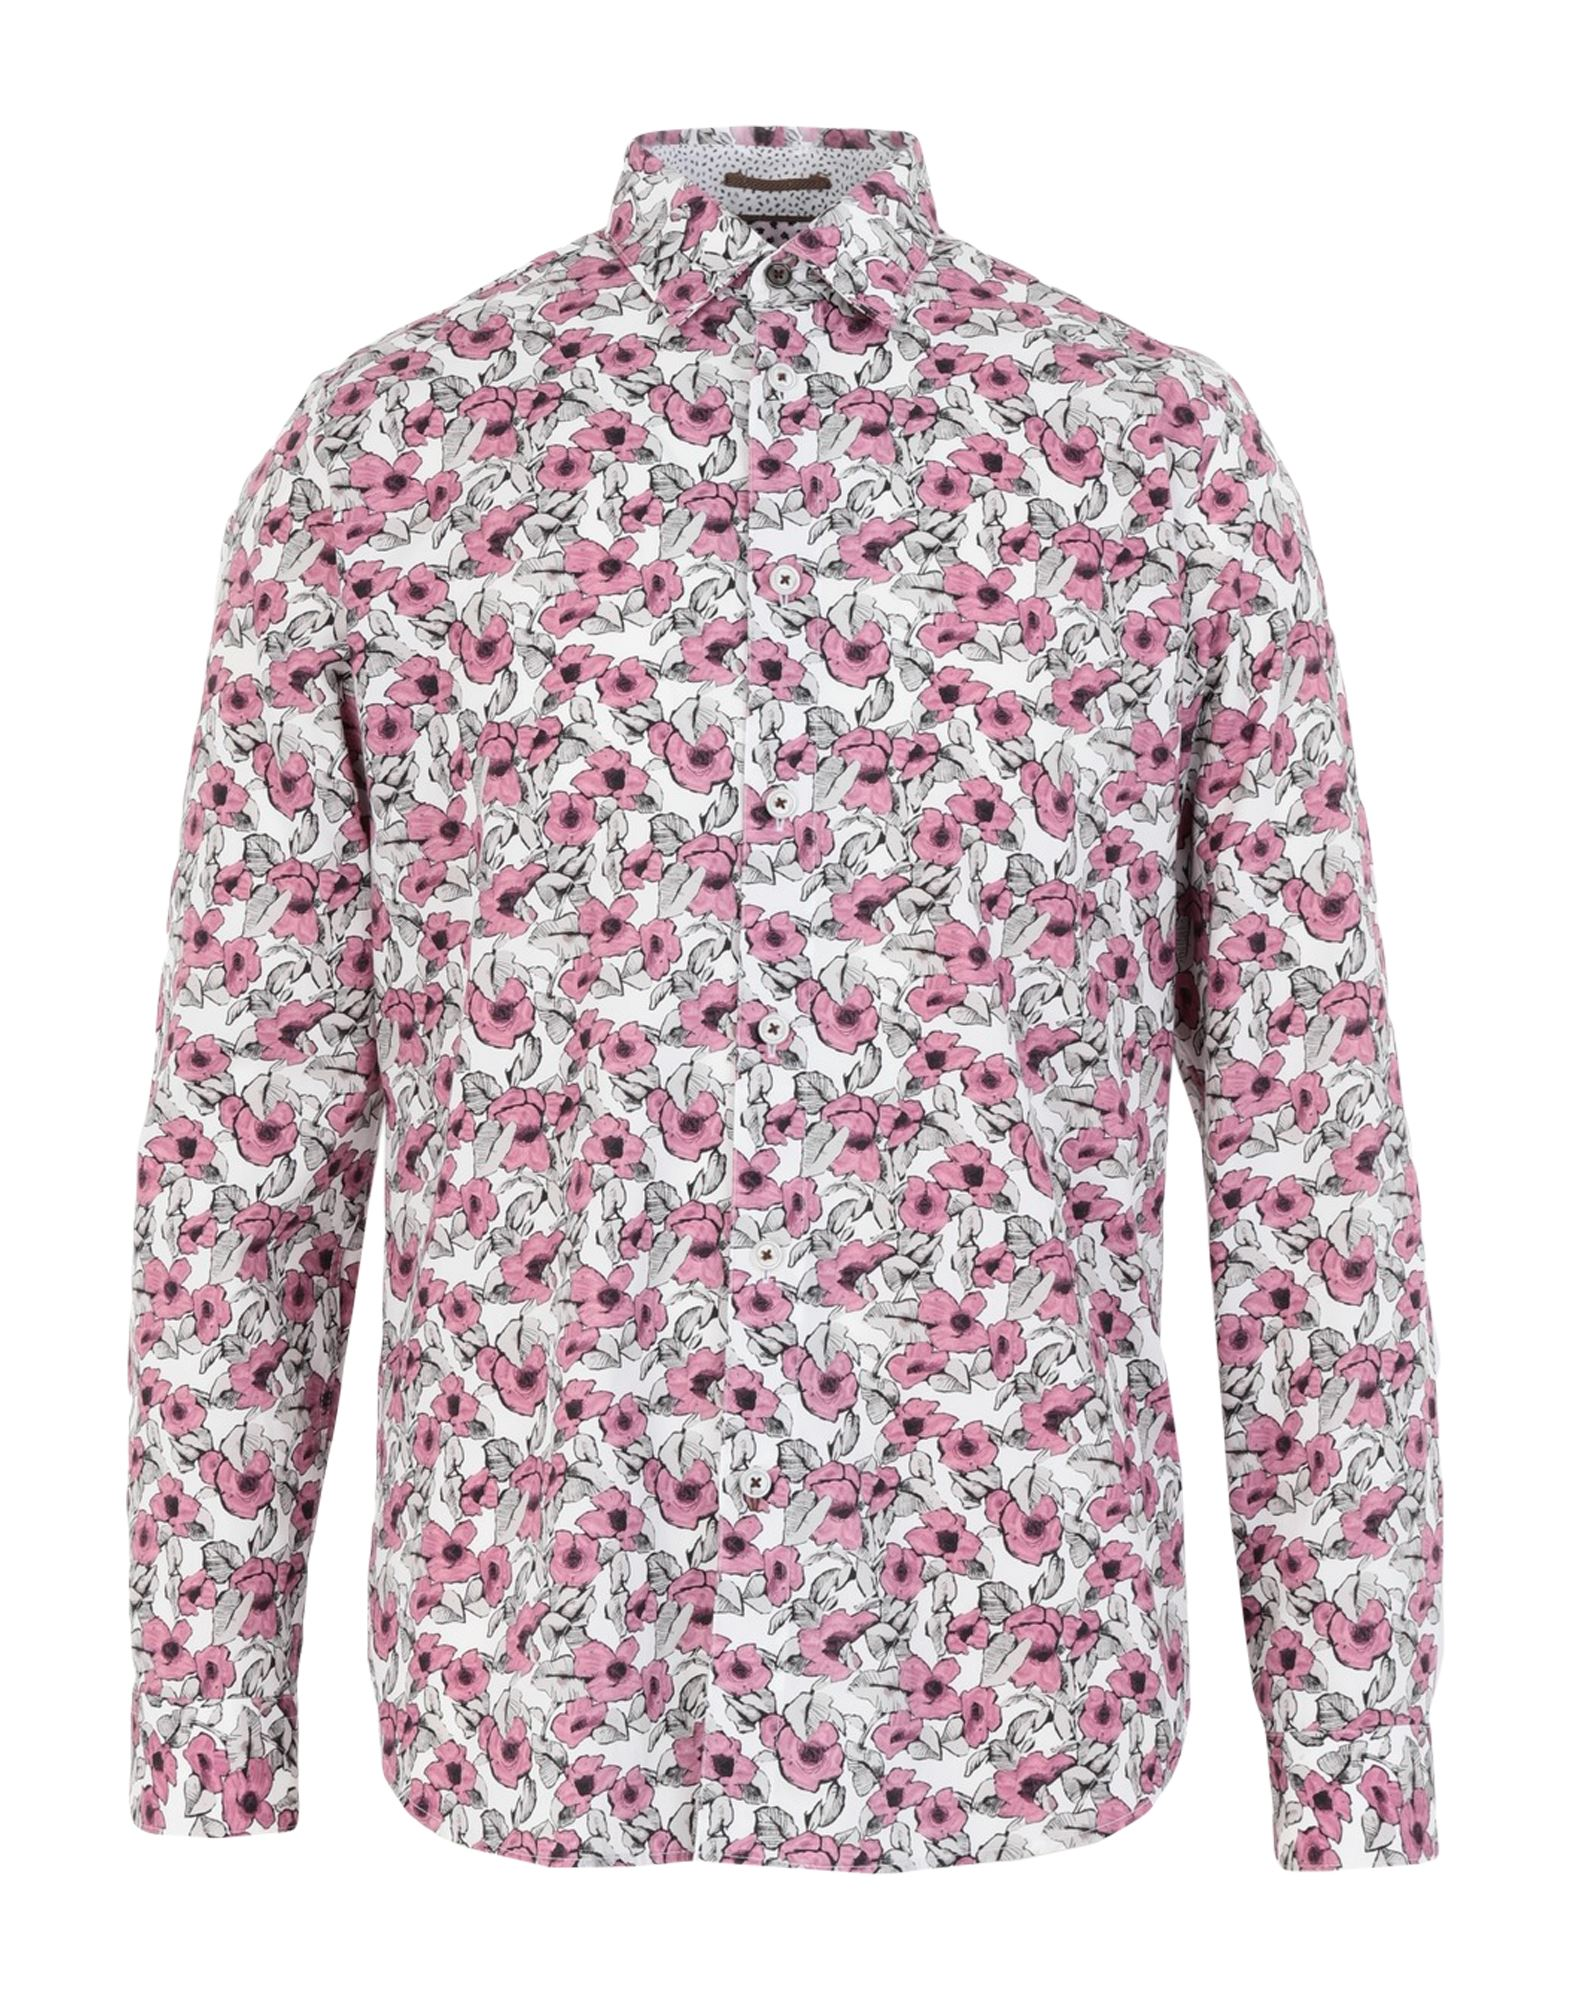 TED BAKER Shirts - Item 38958996